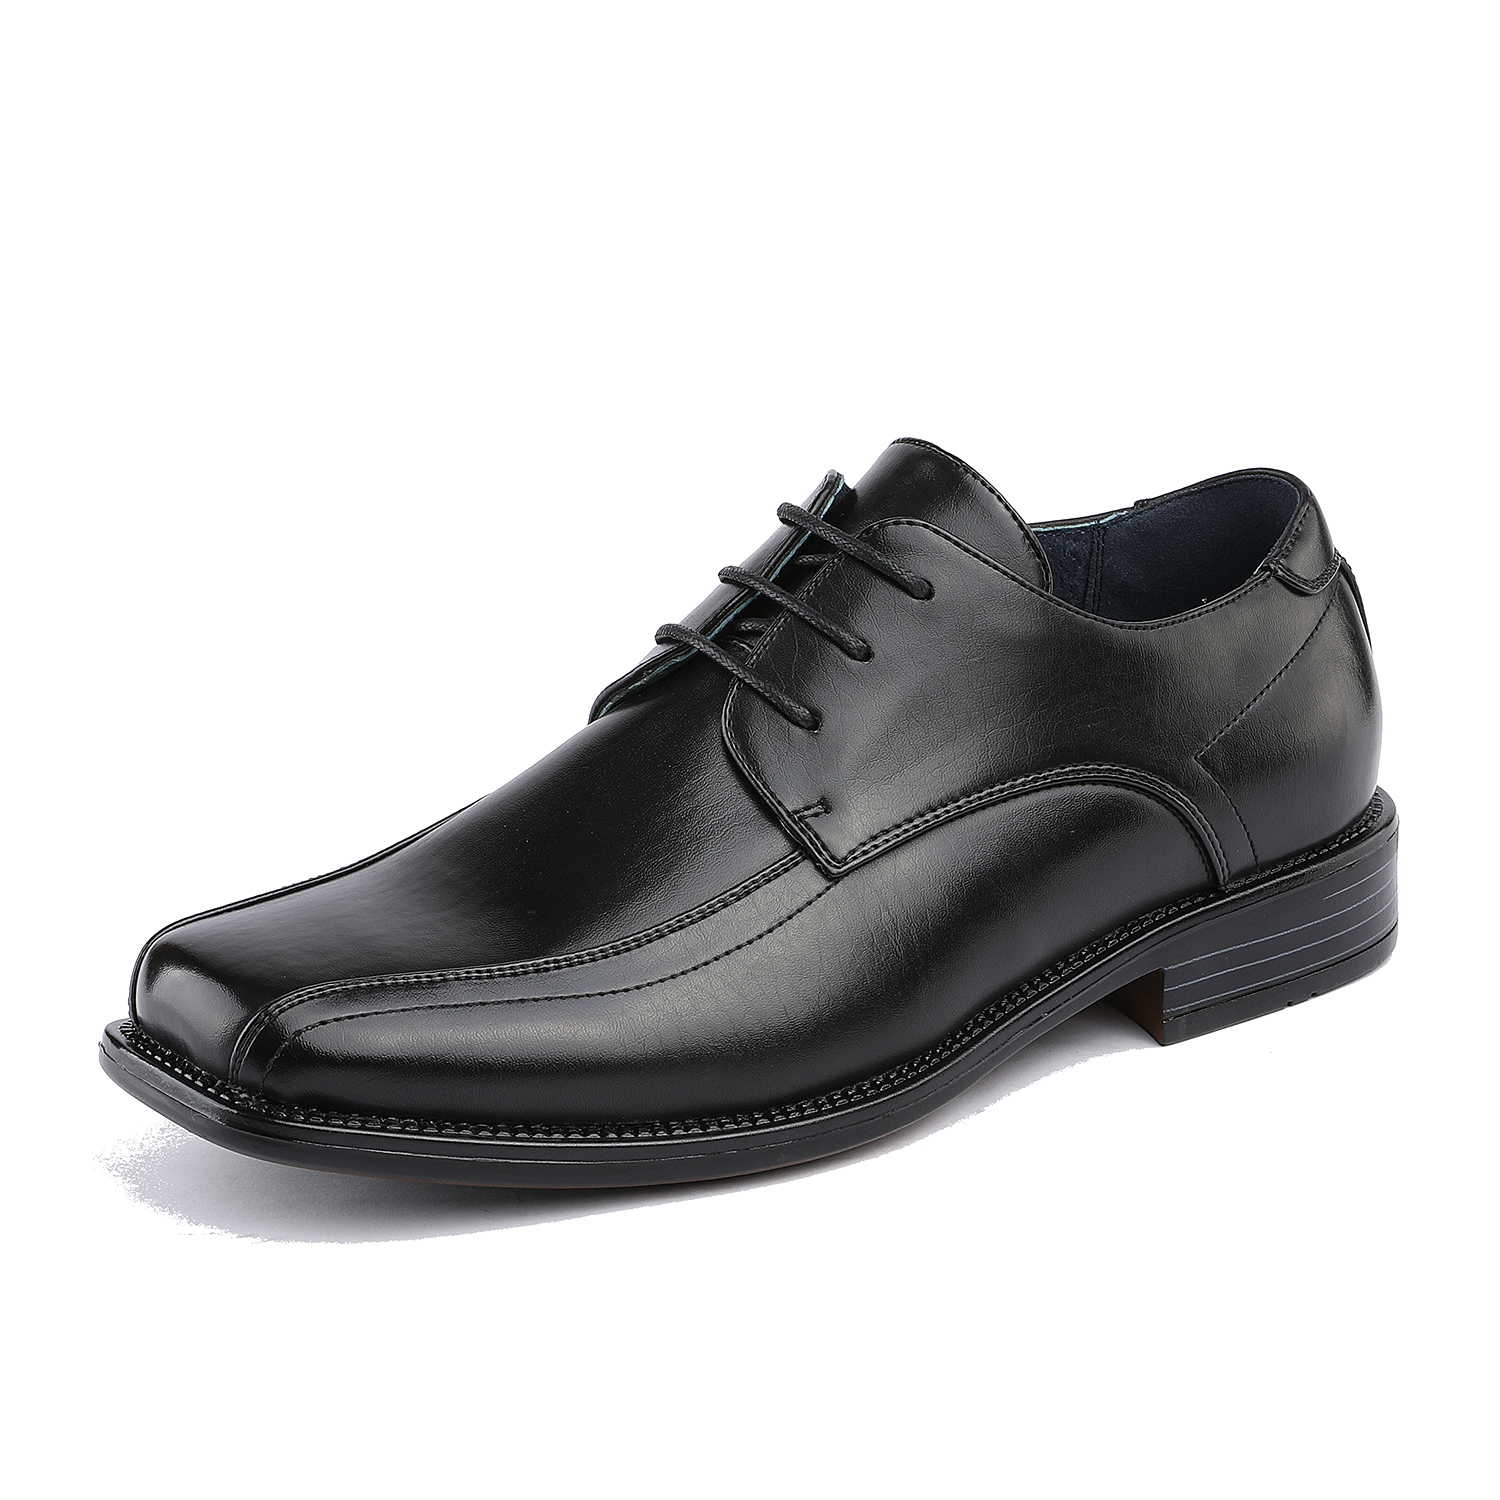 BRUNO-MARC-Men-STATE-Formal-Square-Toe-Leather-Lined-Slip-On-Dress-Loafers-Shoes thumbnail 20